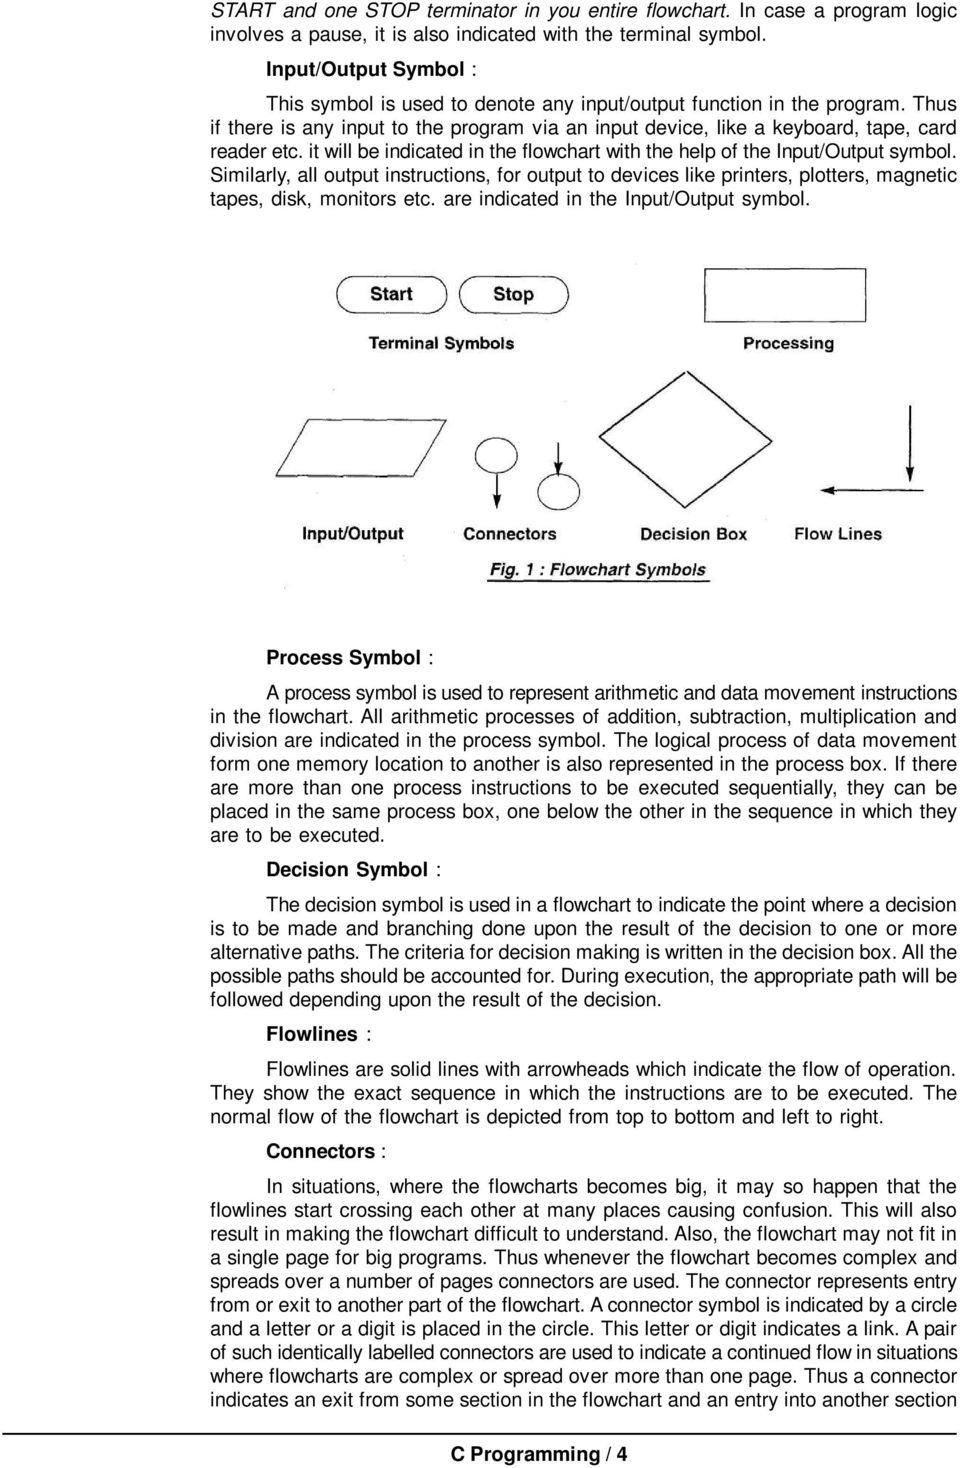 Introduction To Flowcharting Pdf